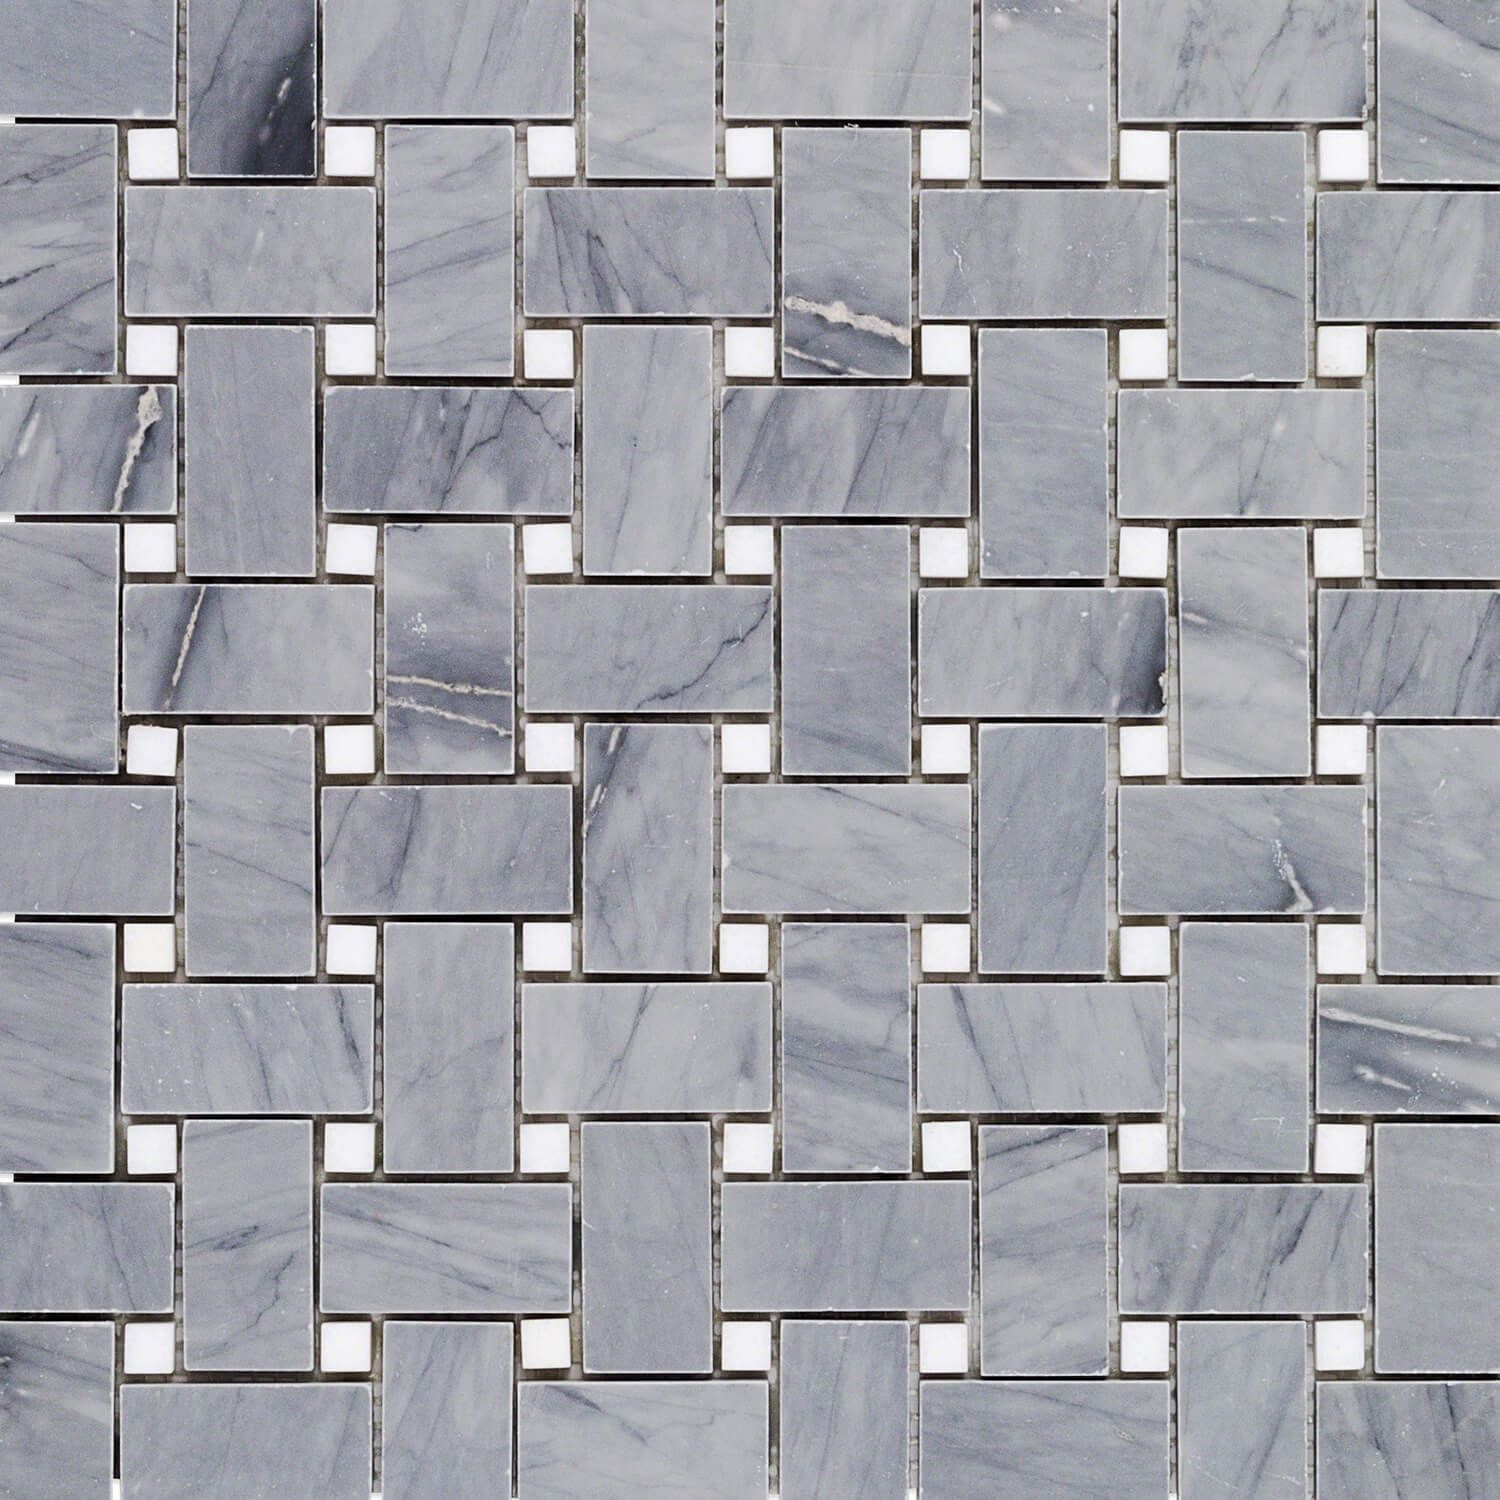 Basket Weave Halley Gray & Thassos Dot Marble Tile